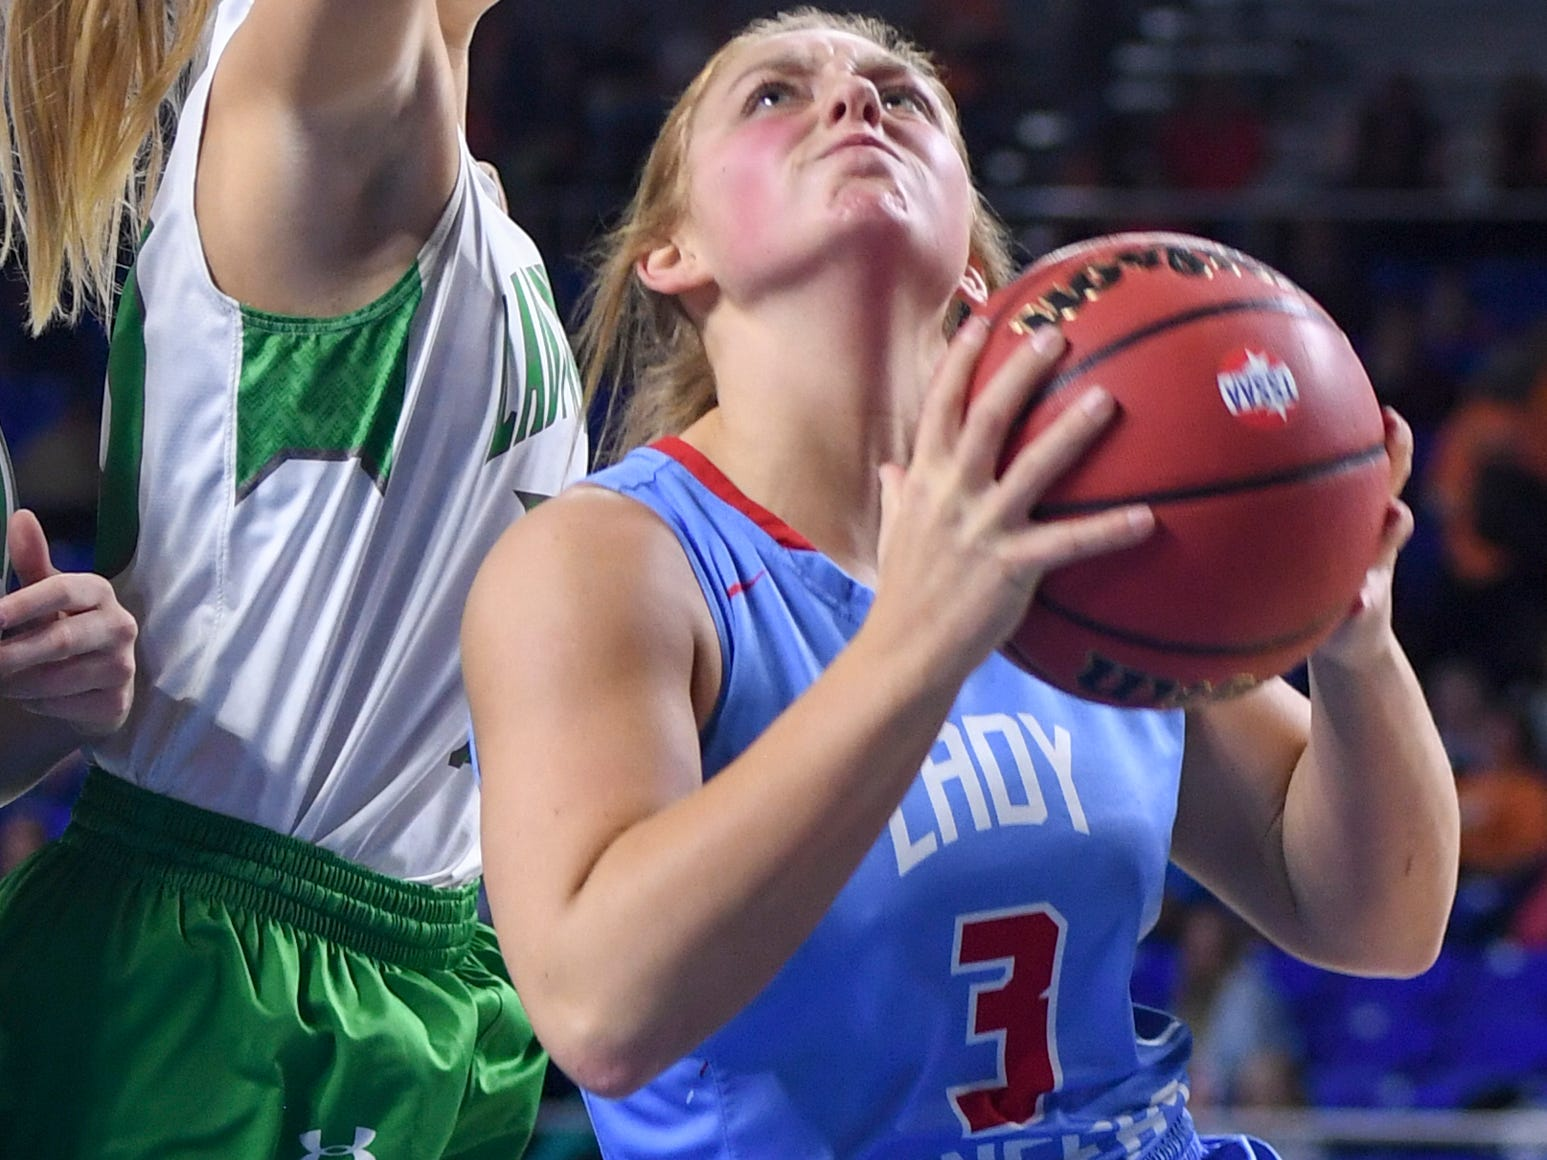 Gibson County's Macey Neal (3) goes up for a shot as a Midway defender reaches over her to block her shot during their Class A semifinal game, Friday, March 8, 2019, in  Murfreesboro.